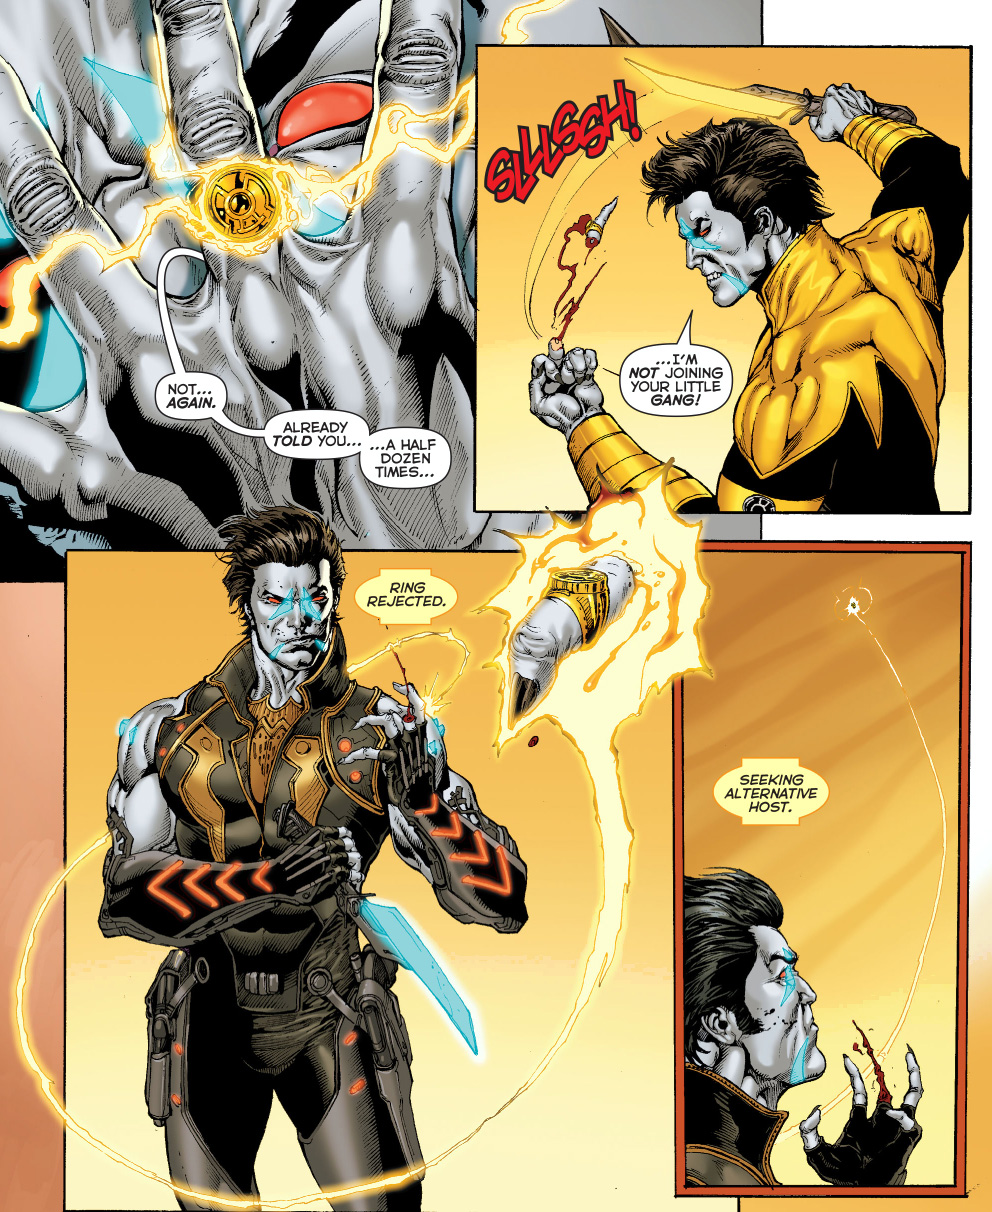 lobo is chosen by a sinestro corps ring